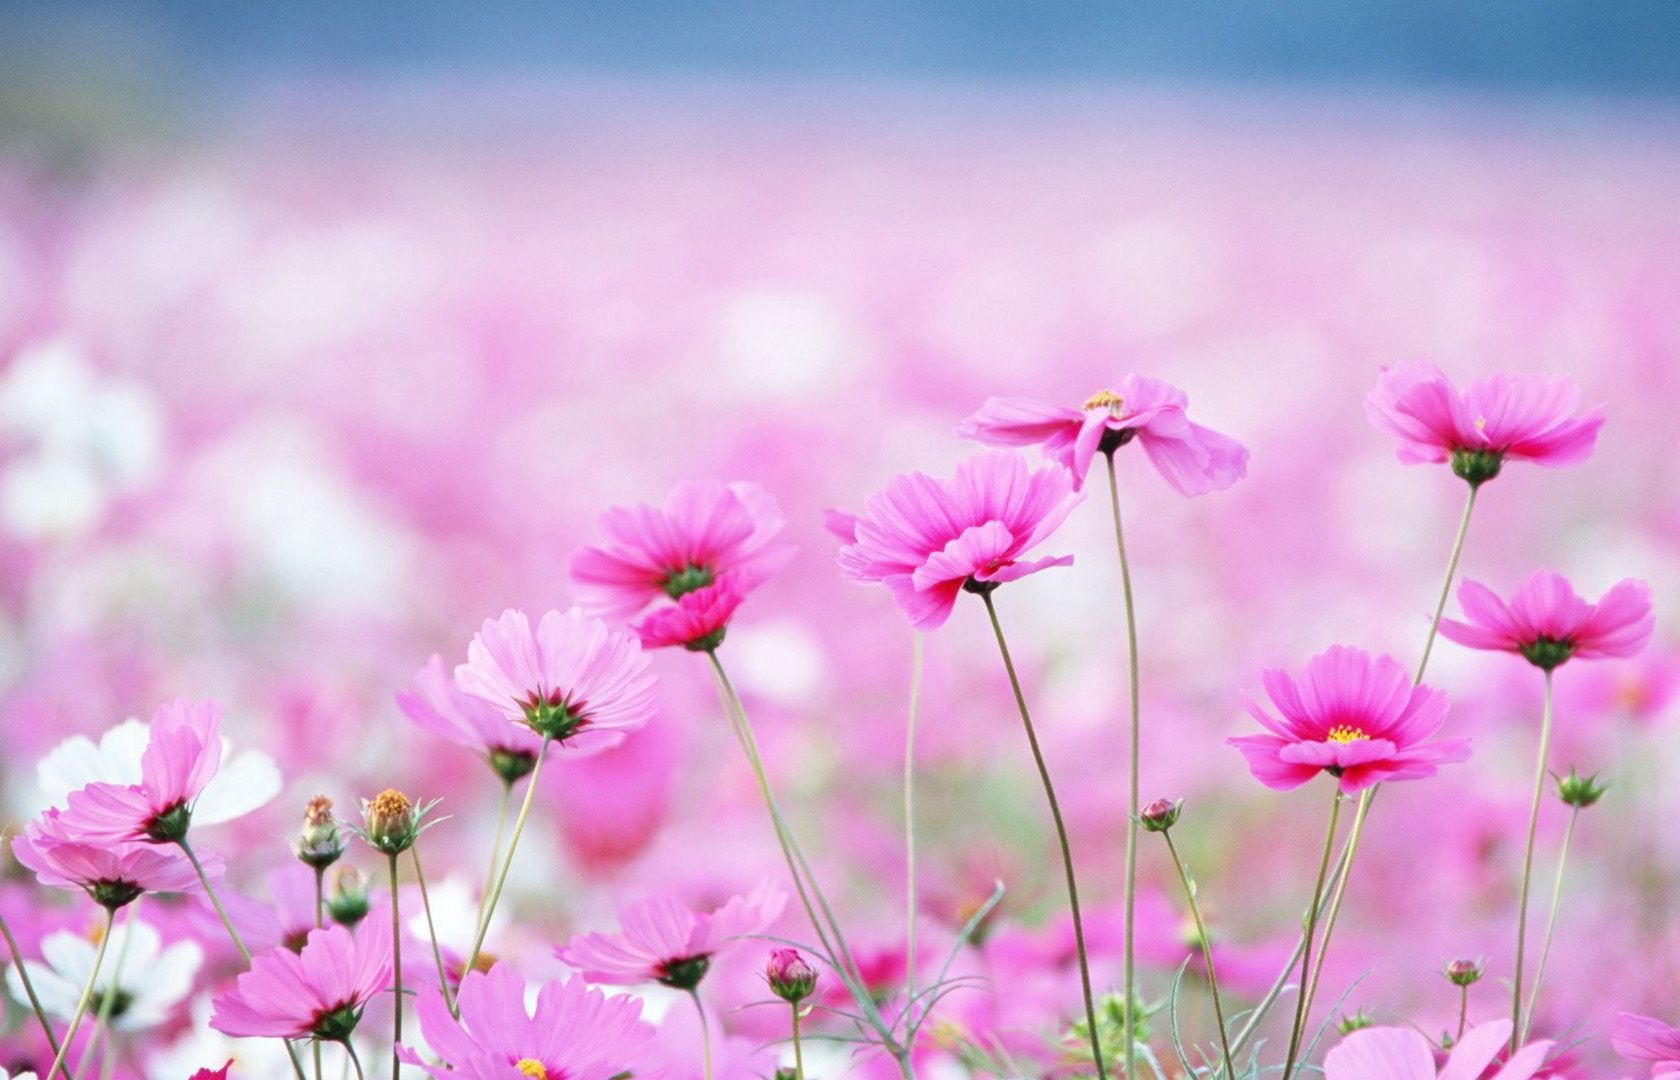 40 BEAUTIFUL FLOWER WALLPAPERS FREE TO DOWNLOAD Resim